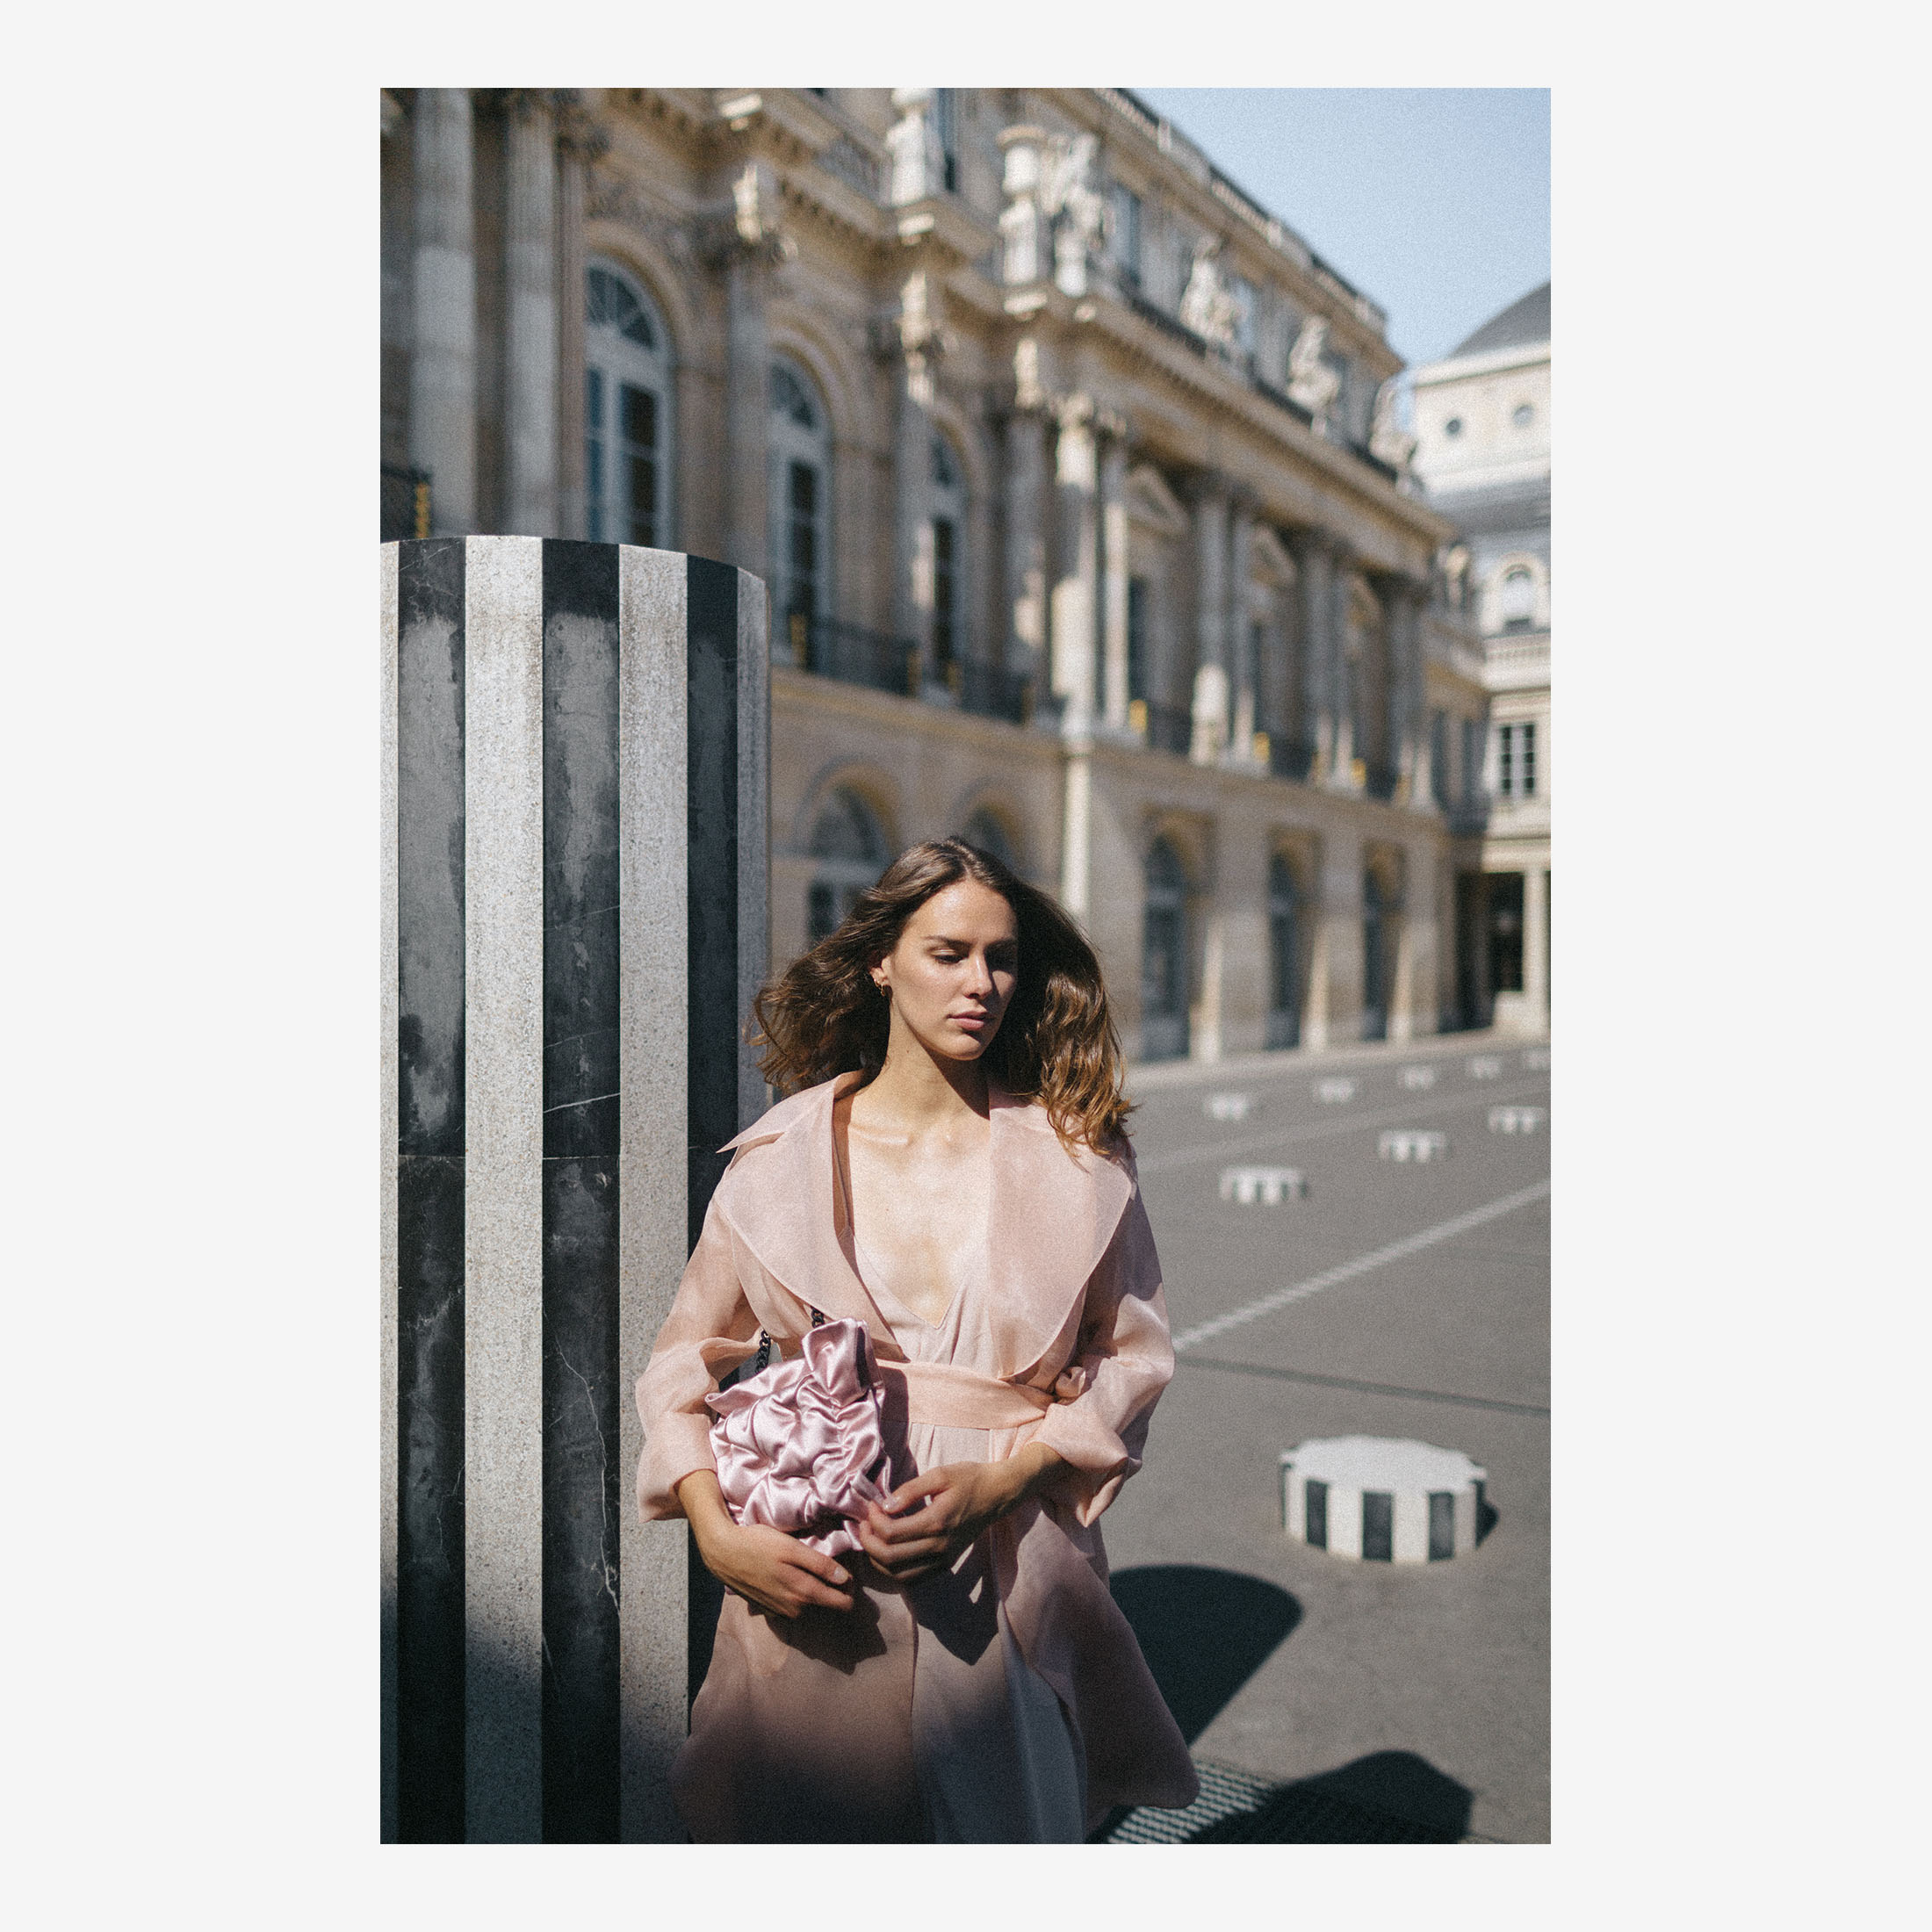 Woman in front of Colonnes de Buren in Palais Royal with Laimushka silk pillow bag